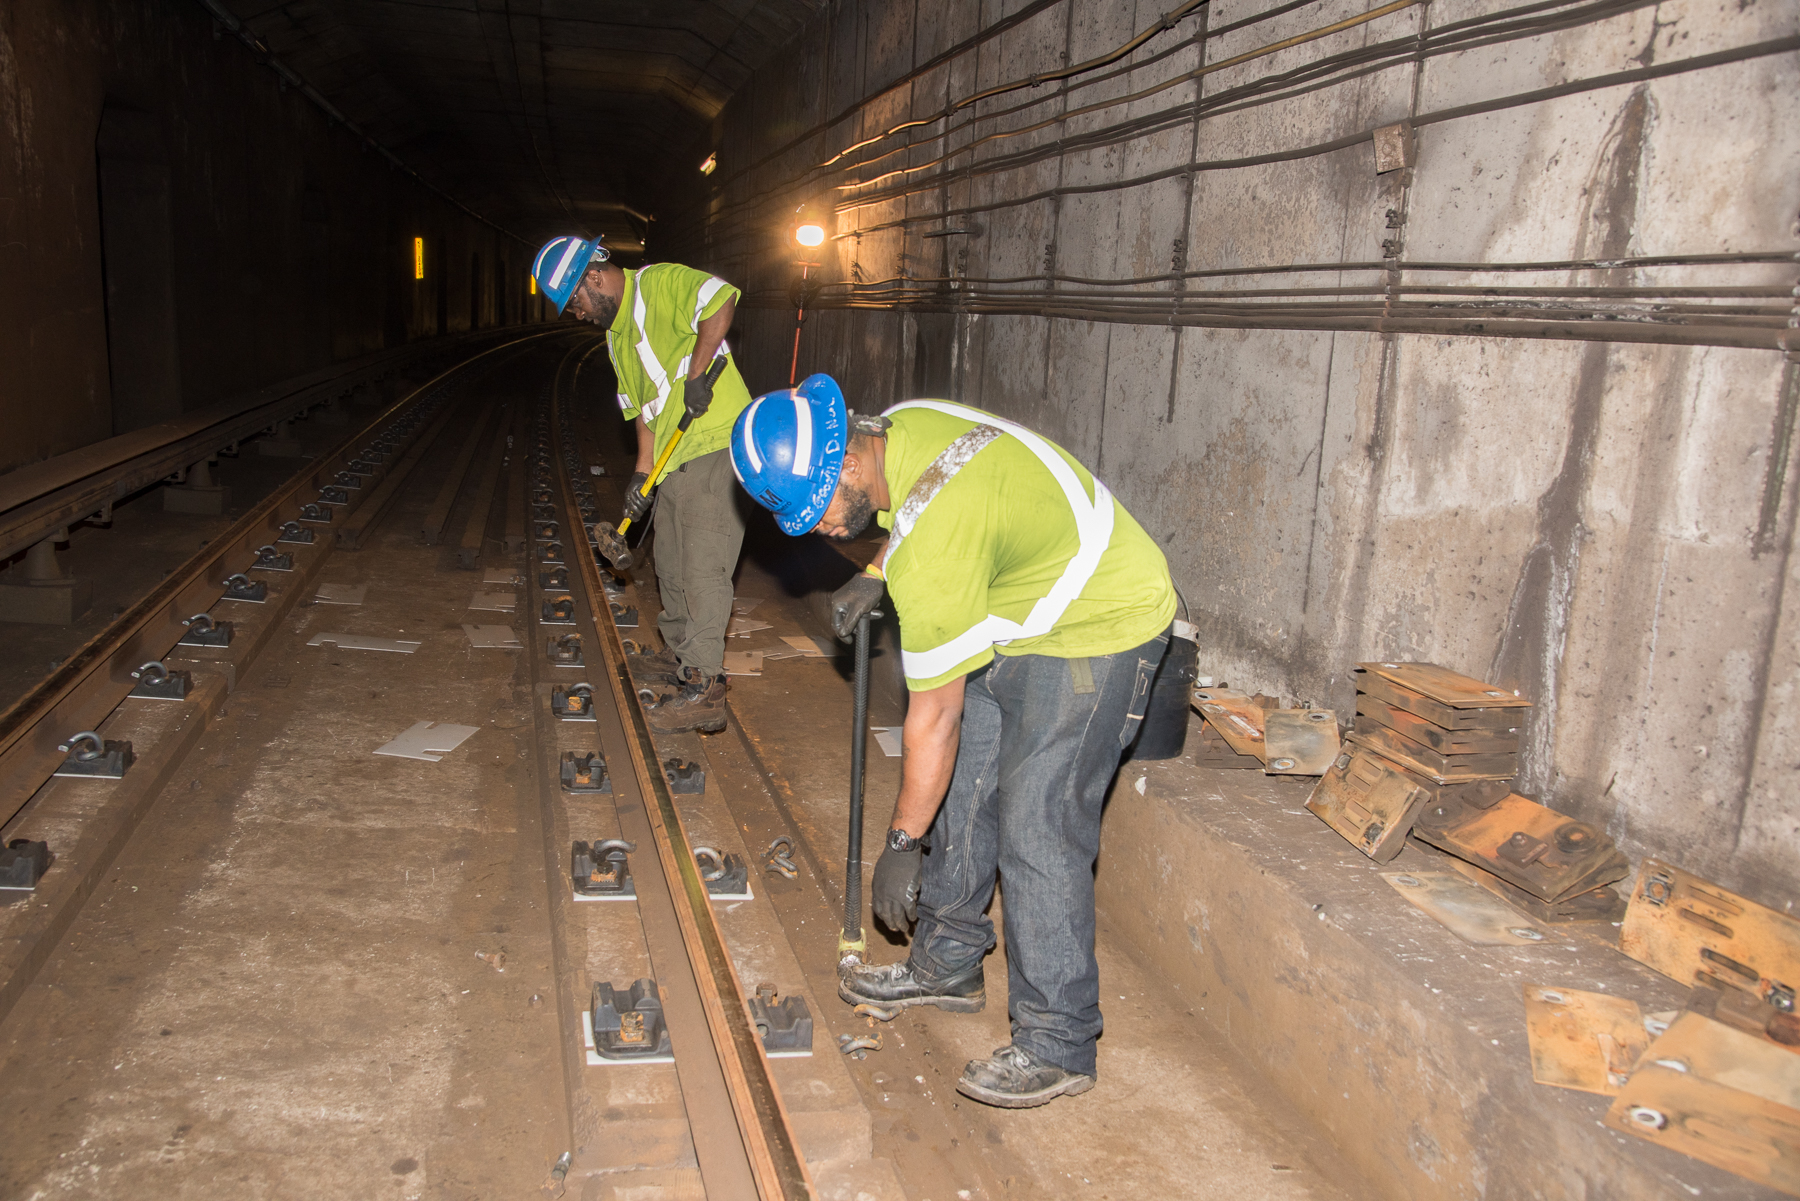 workers replacing rail fasteners